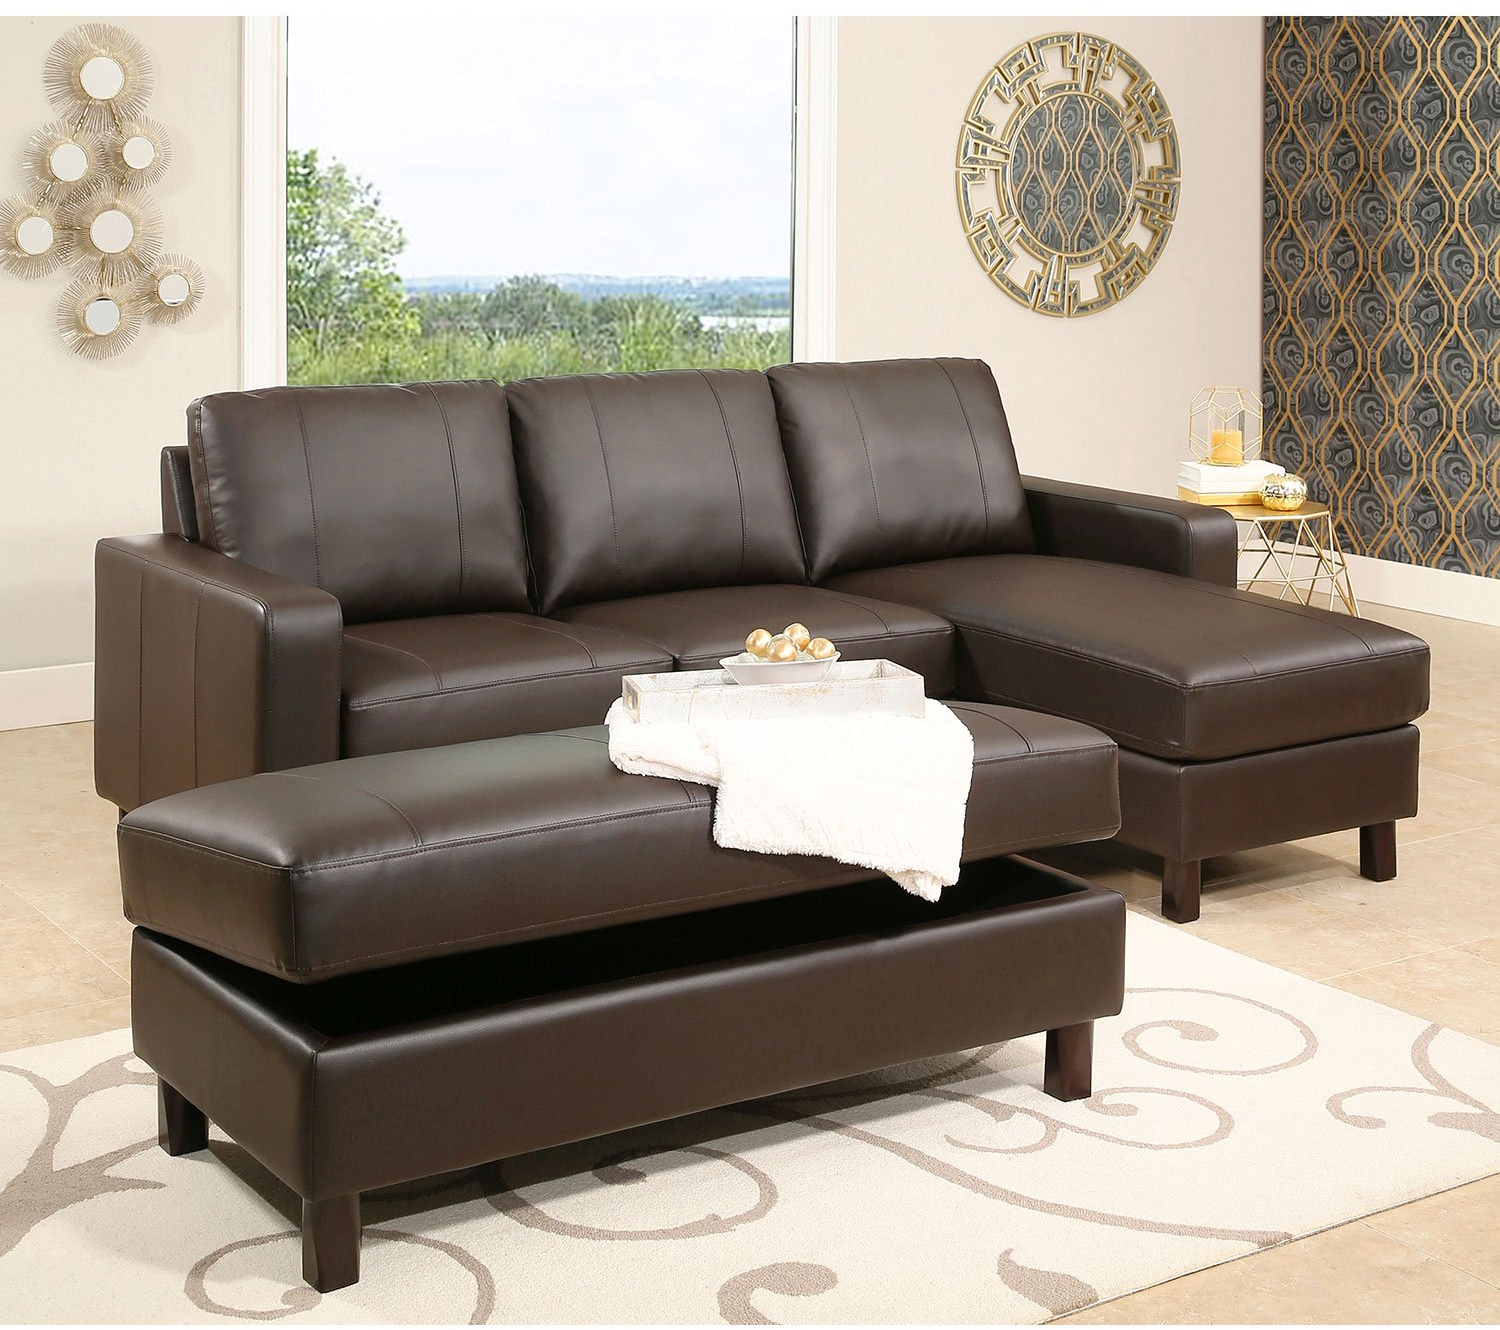 Fabulous Details About Abbyson Living Room Brown Leather Reversible Sectional Sofa And Storage Ottoman Bralicious Painted Fabric Chair Ideas Braliciousco